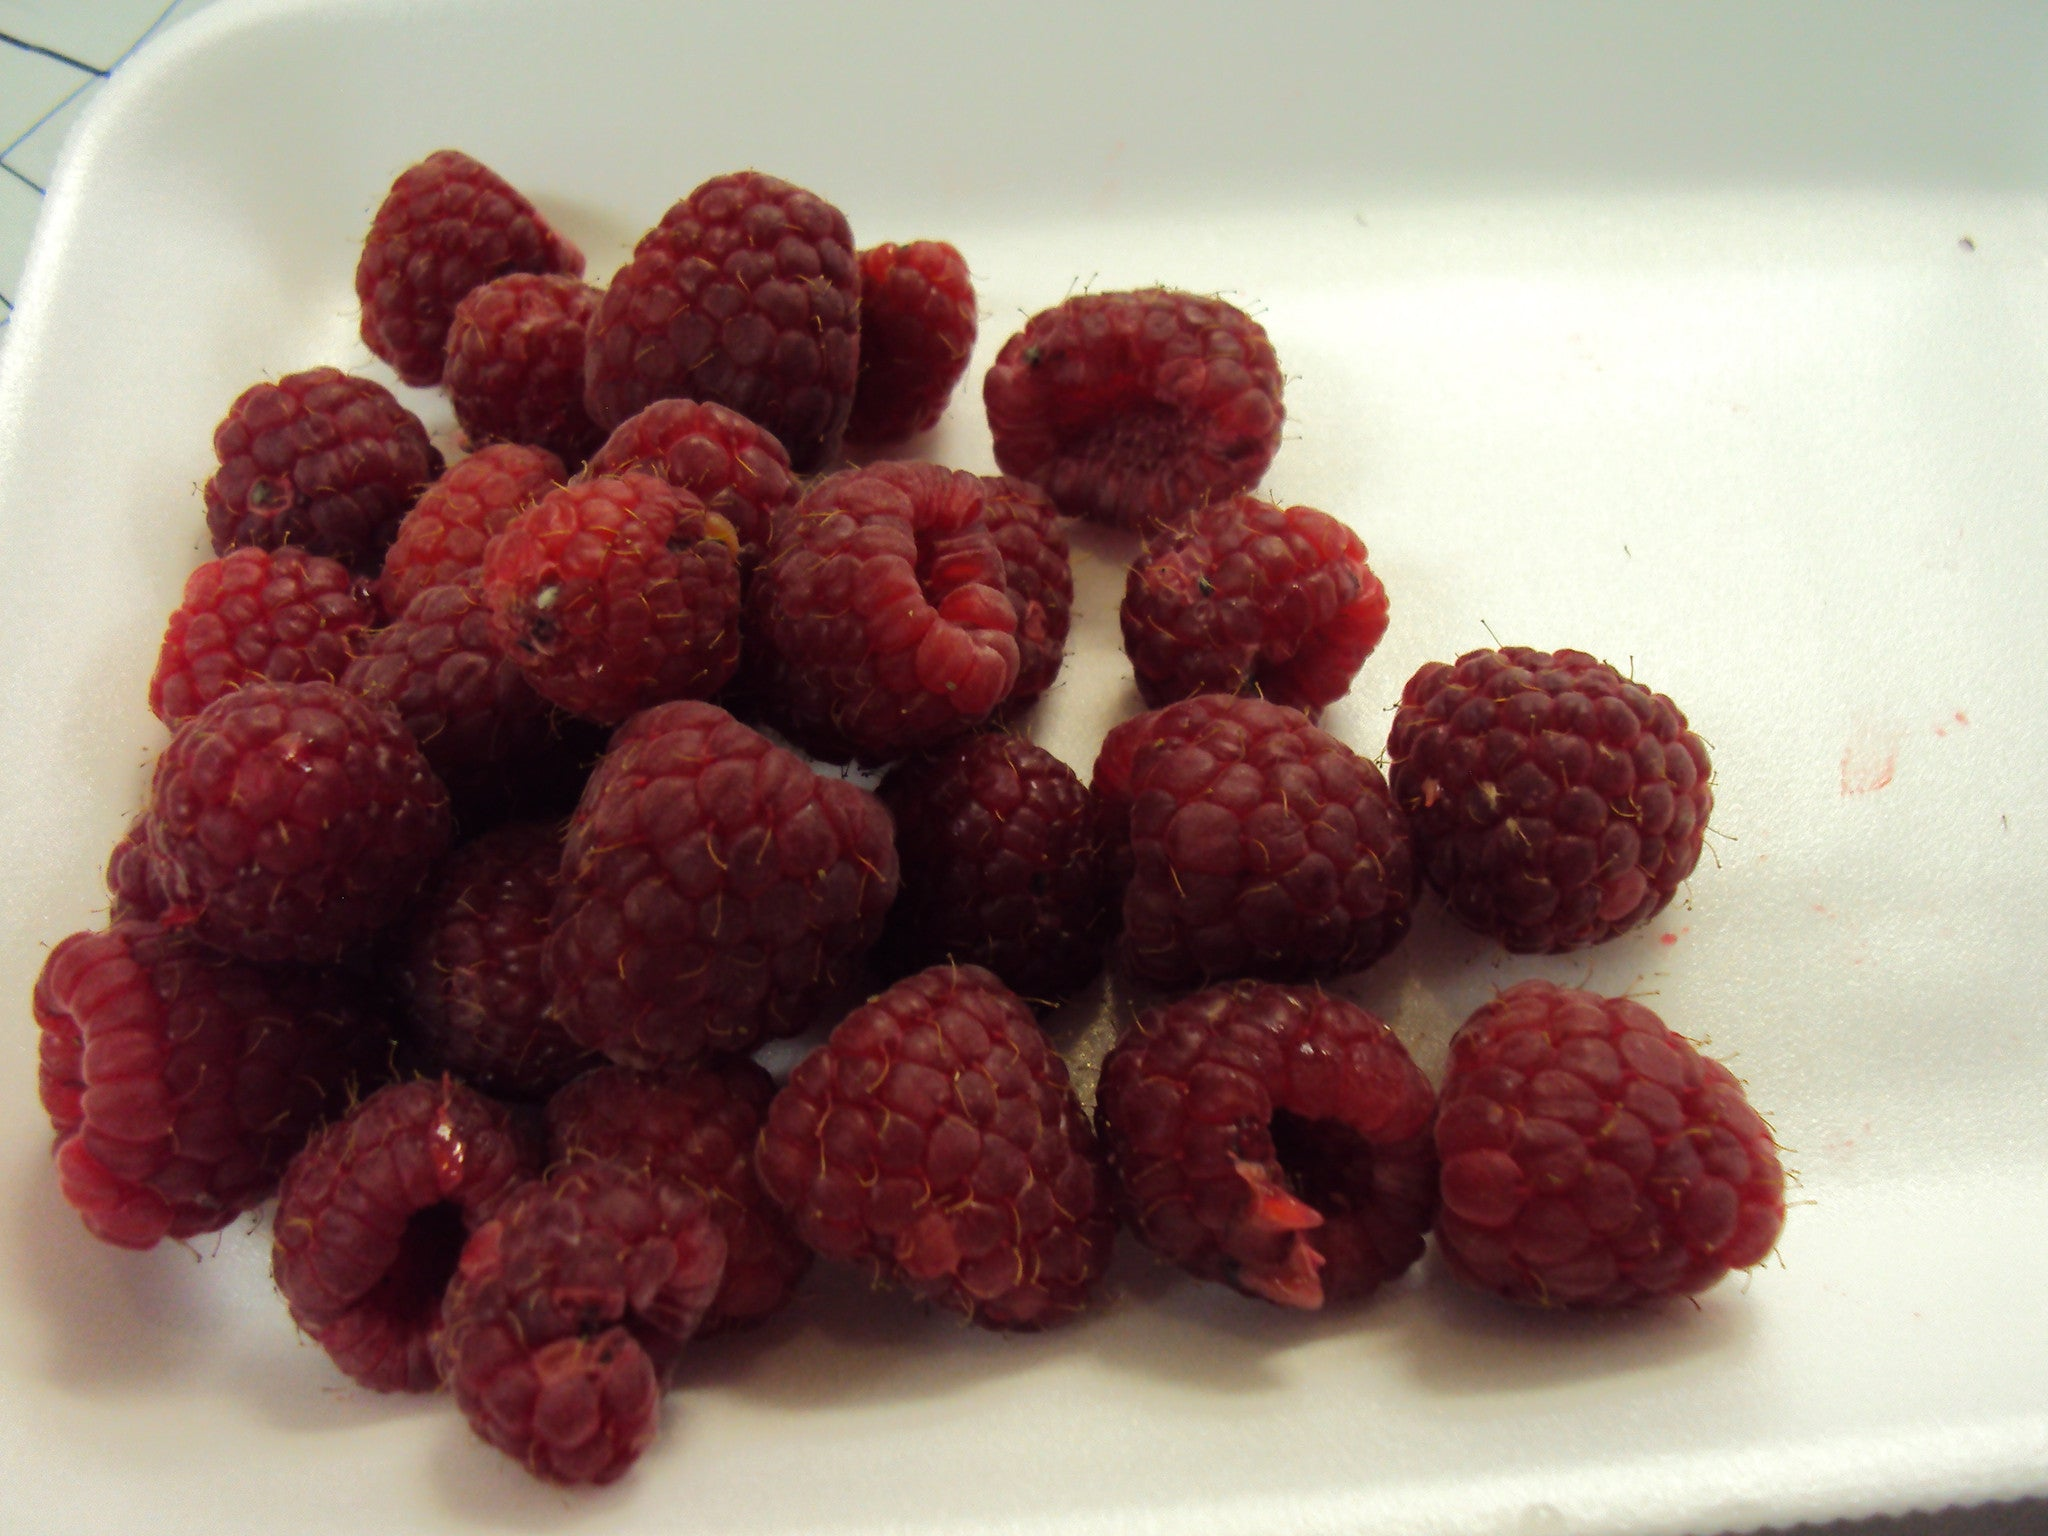 Raspberry.Your local Nutfree Bakery. We sell gift baskets, cakes, cupcakes and more. Call us today 613.384.5100